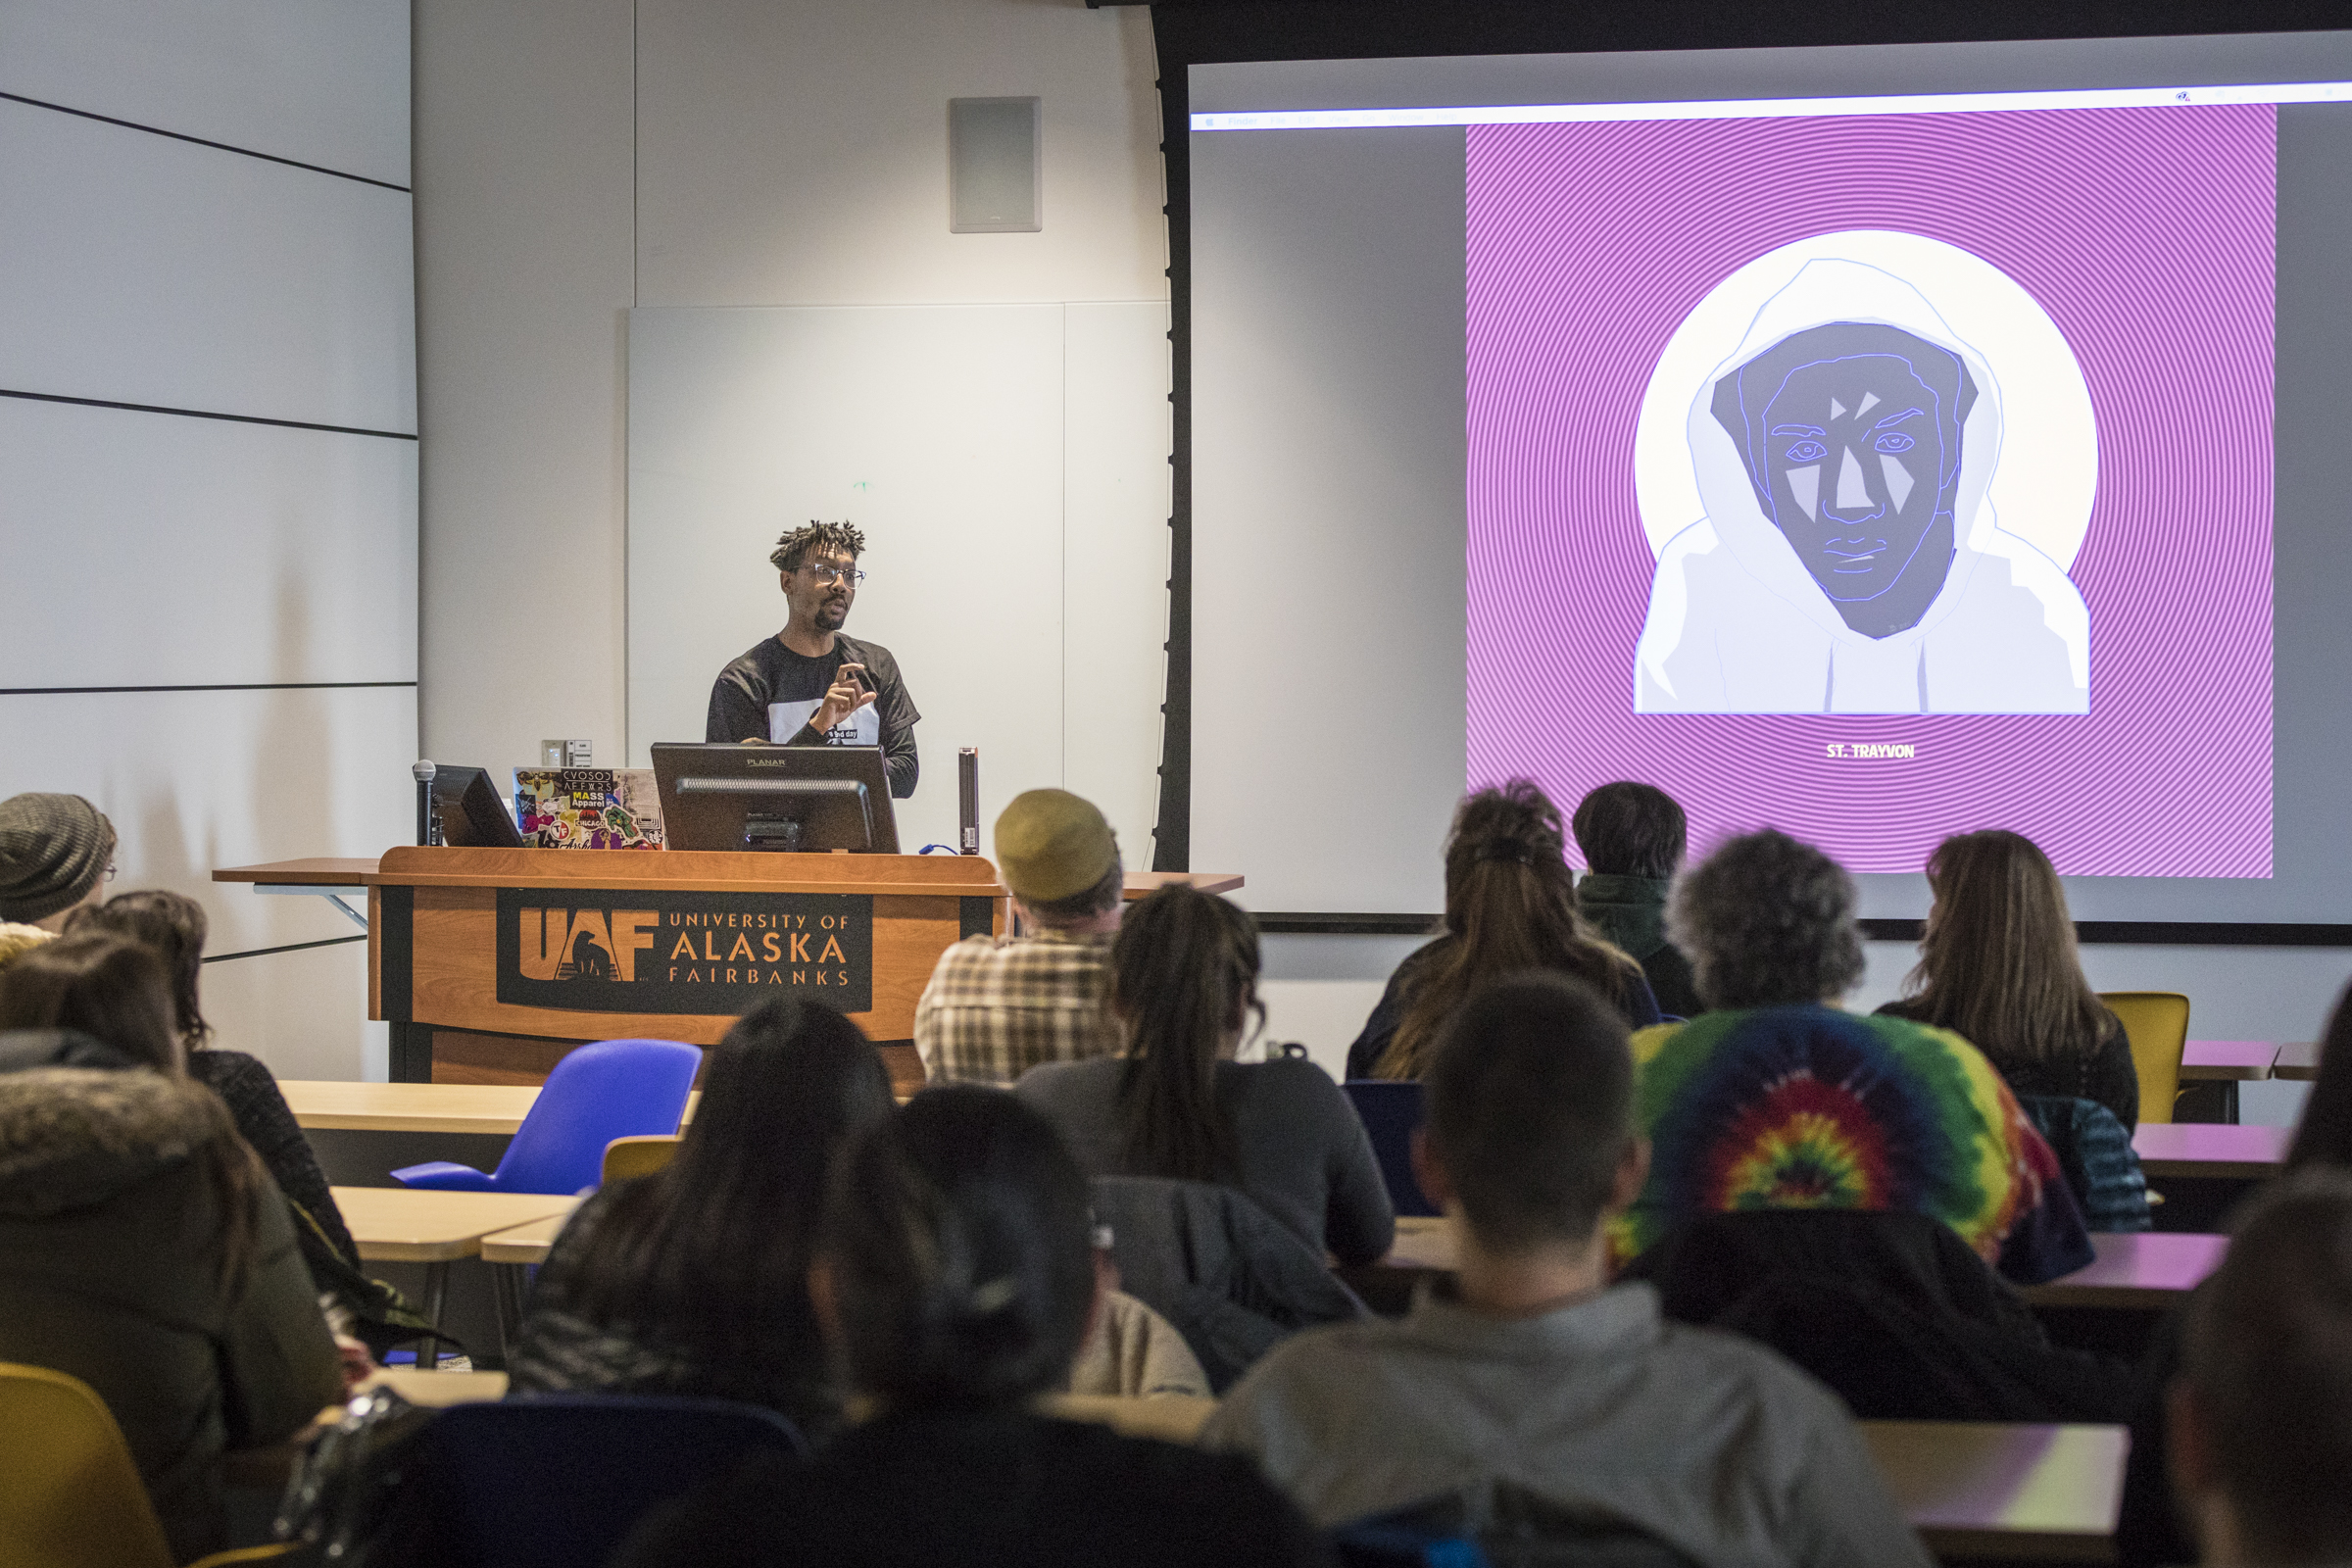 Artist and Black Lives Matter Activist Damon Davis giving a lecture in February 2018. Photo by UAF photographer JR Ancheta.